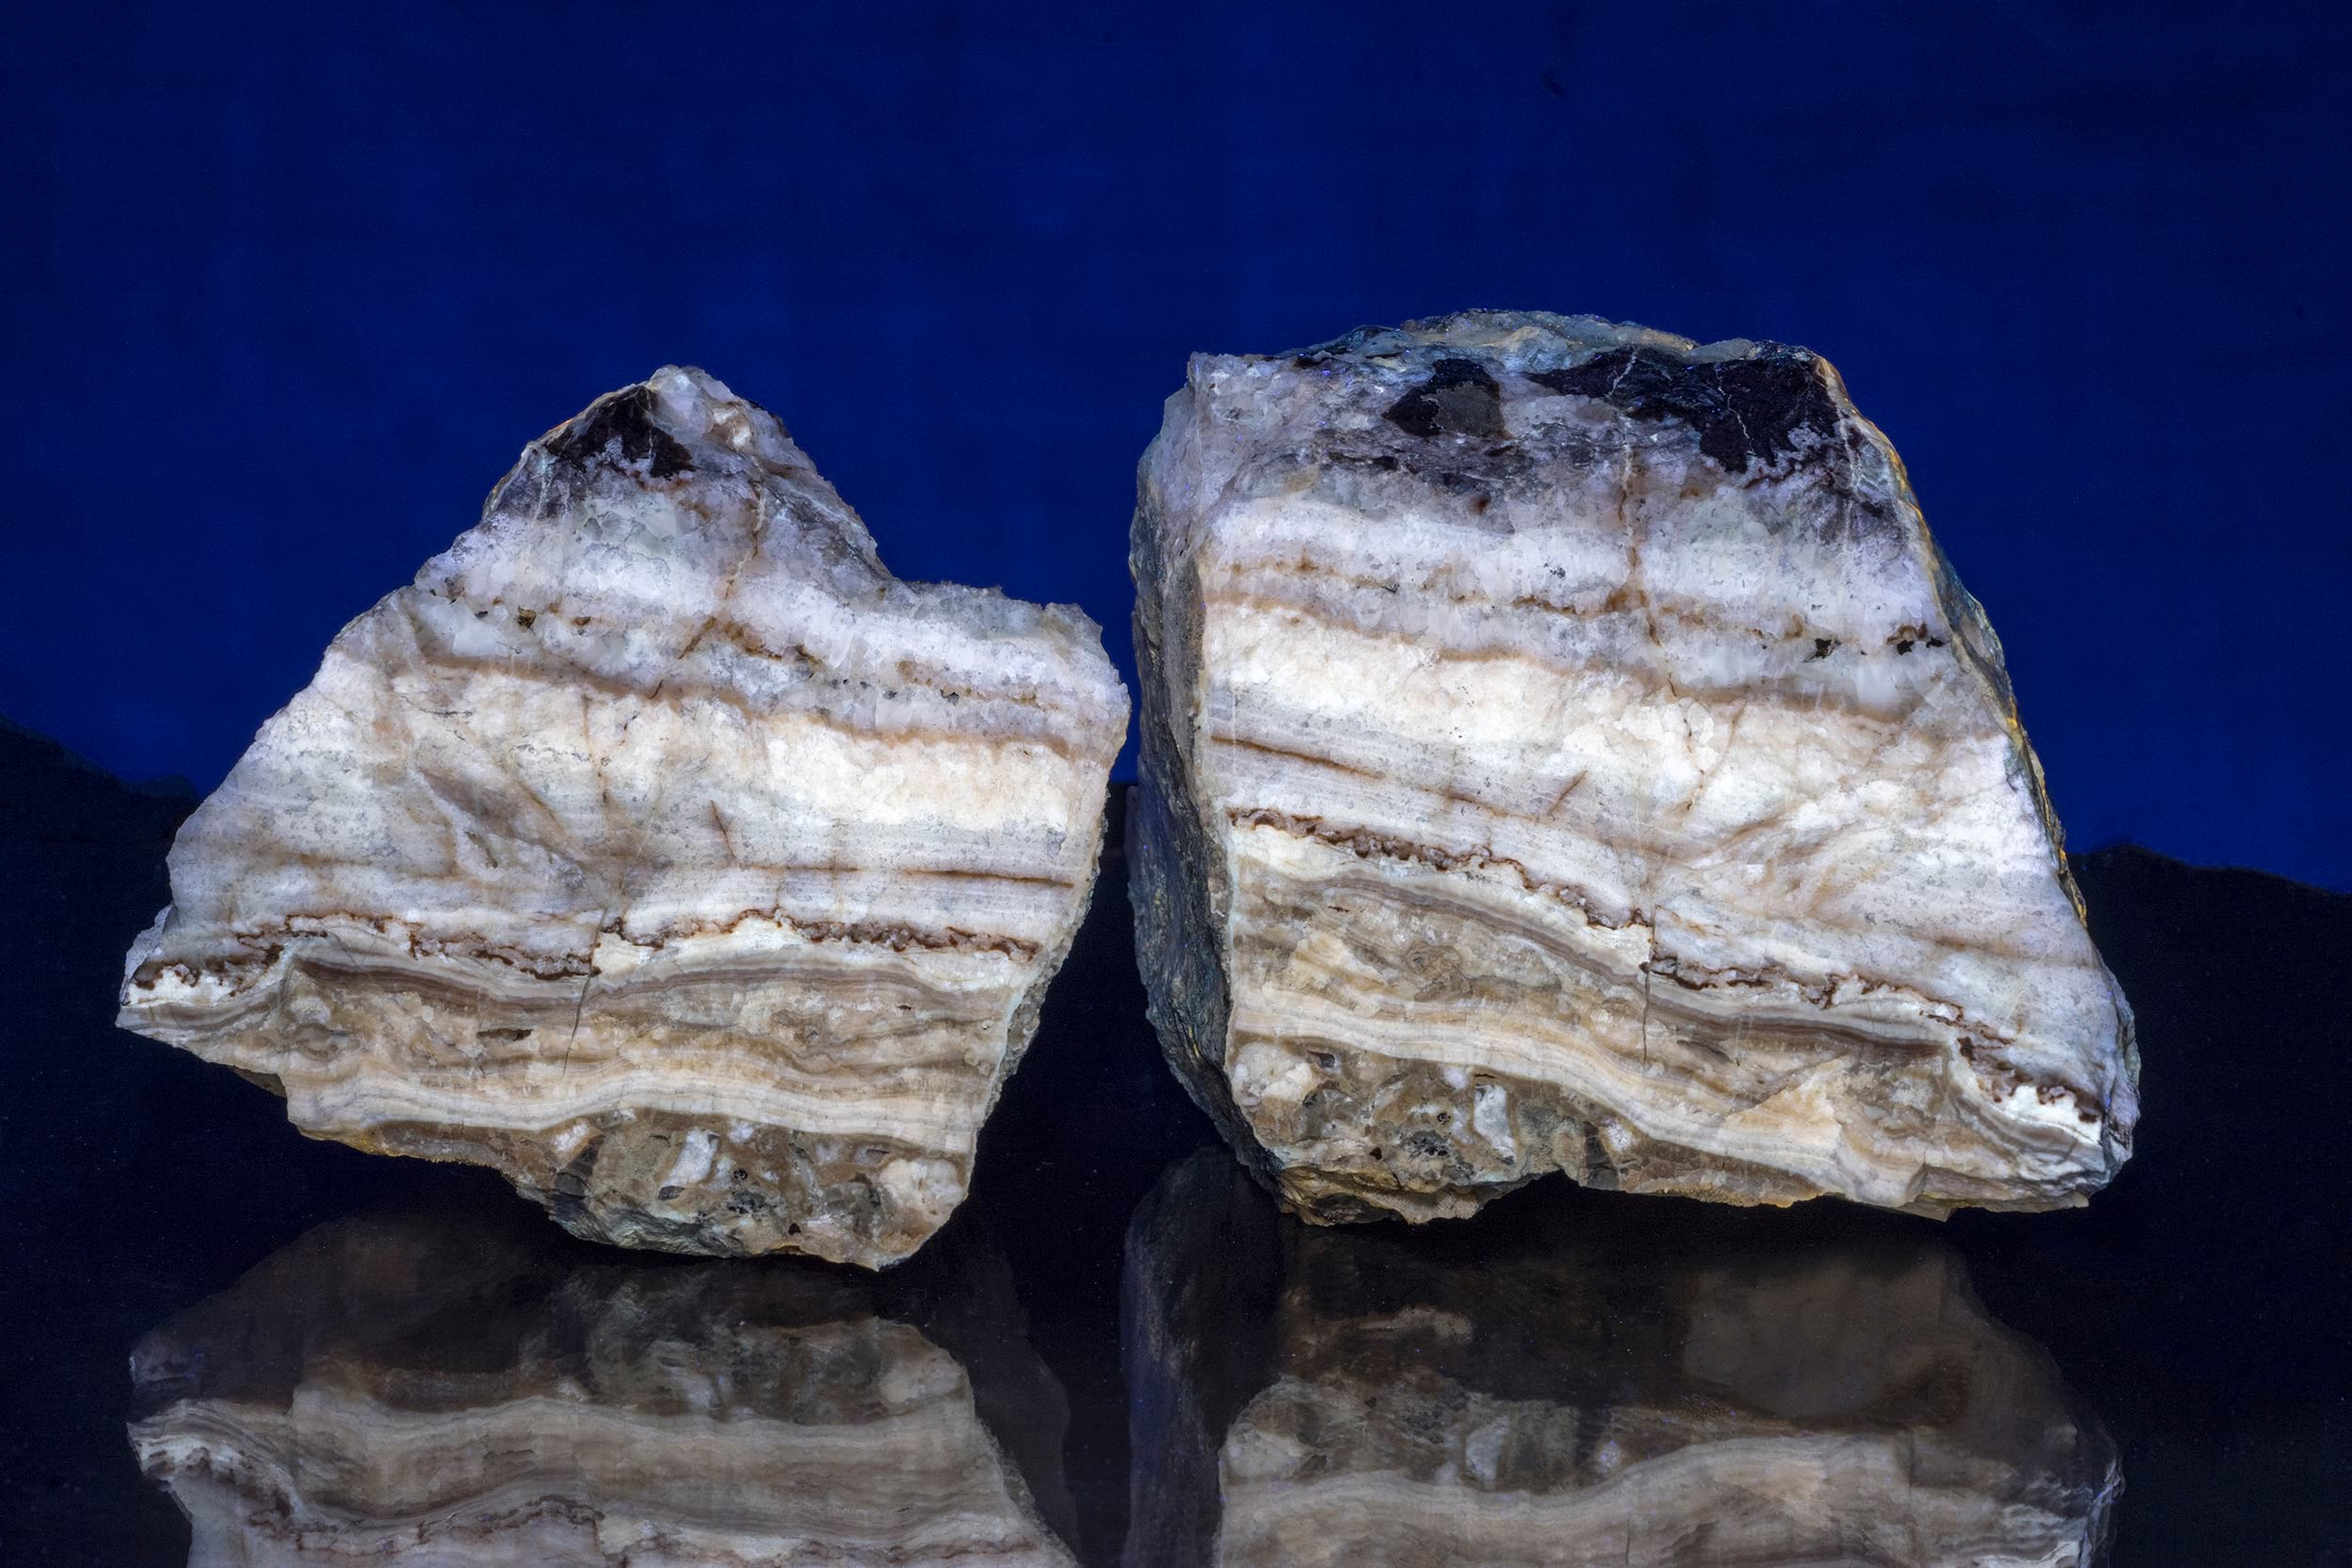 - Not that we cared for the lead minerals. We were there solely for fluorescents! There was plenty to choose from but this was the piece that I took home.http://www.raymond-wu.com/all/2017/11/4/calcite-chert-travertine